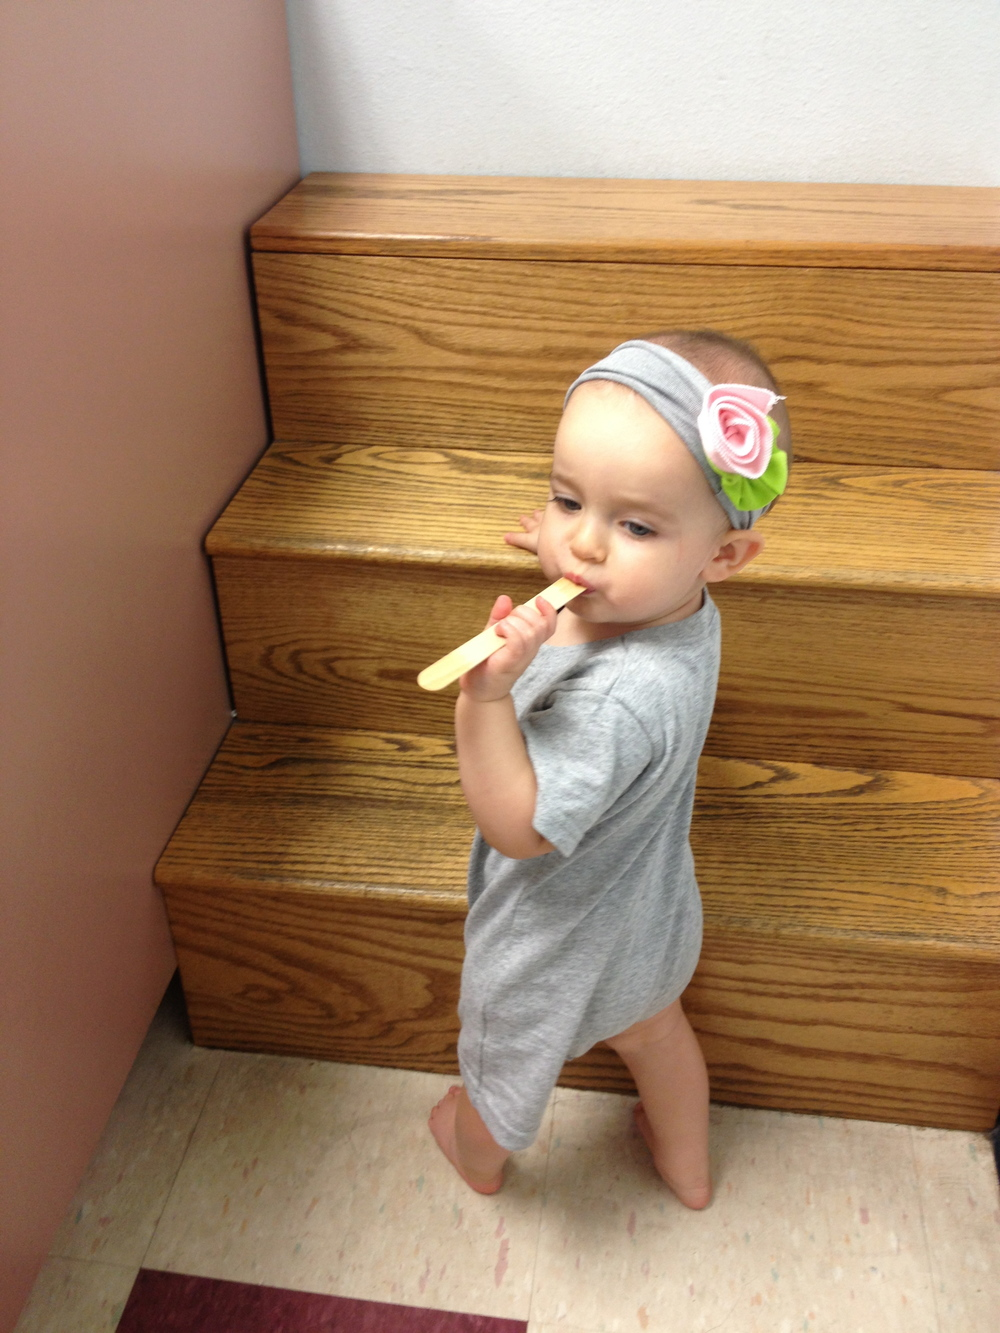 Climbing the stairs at the Dr's Office